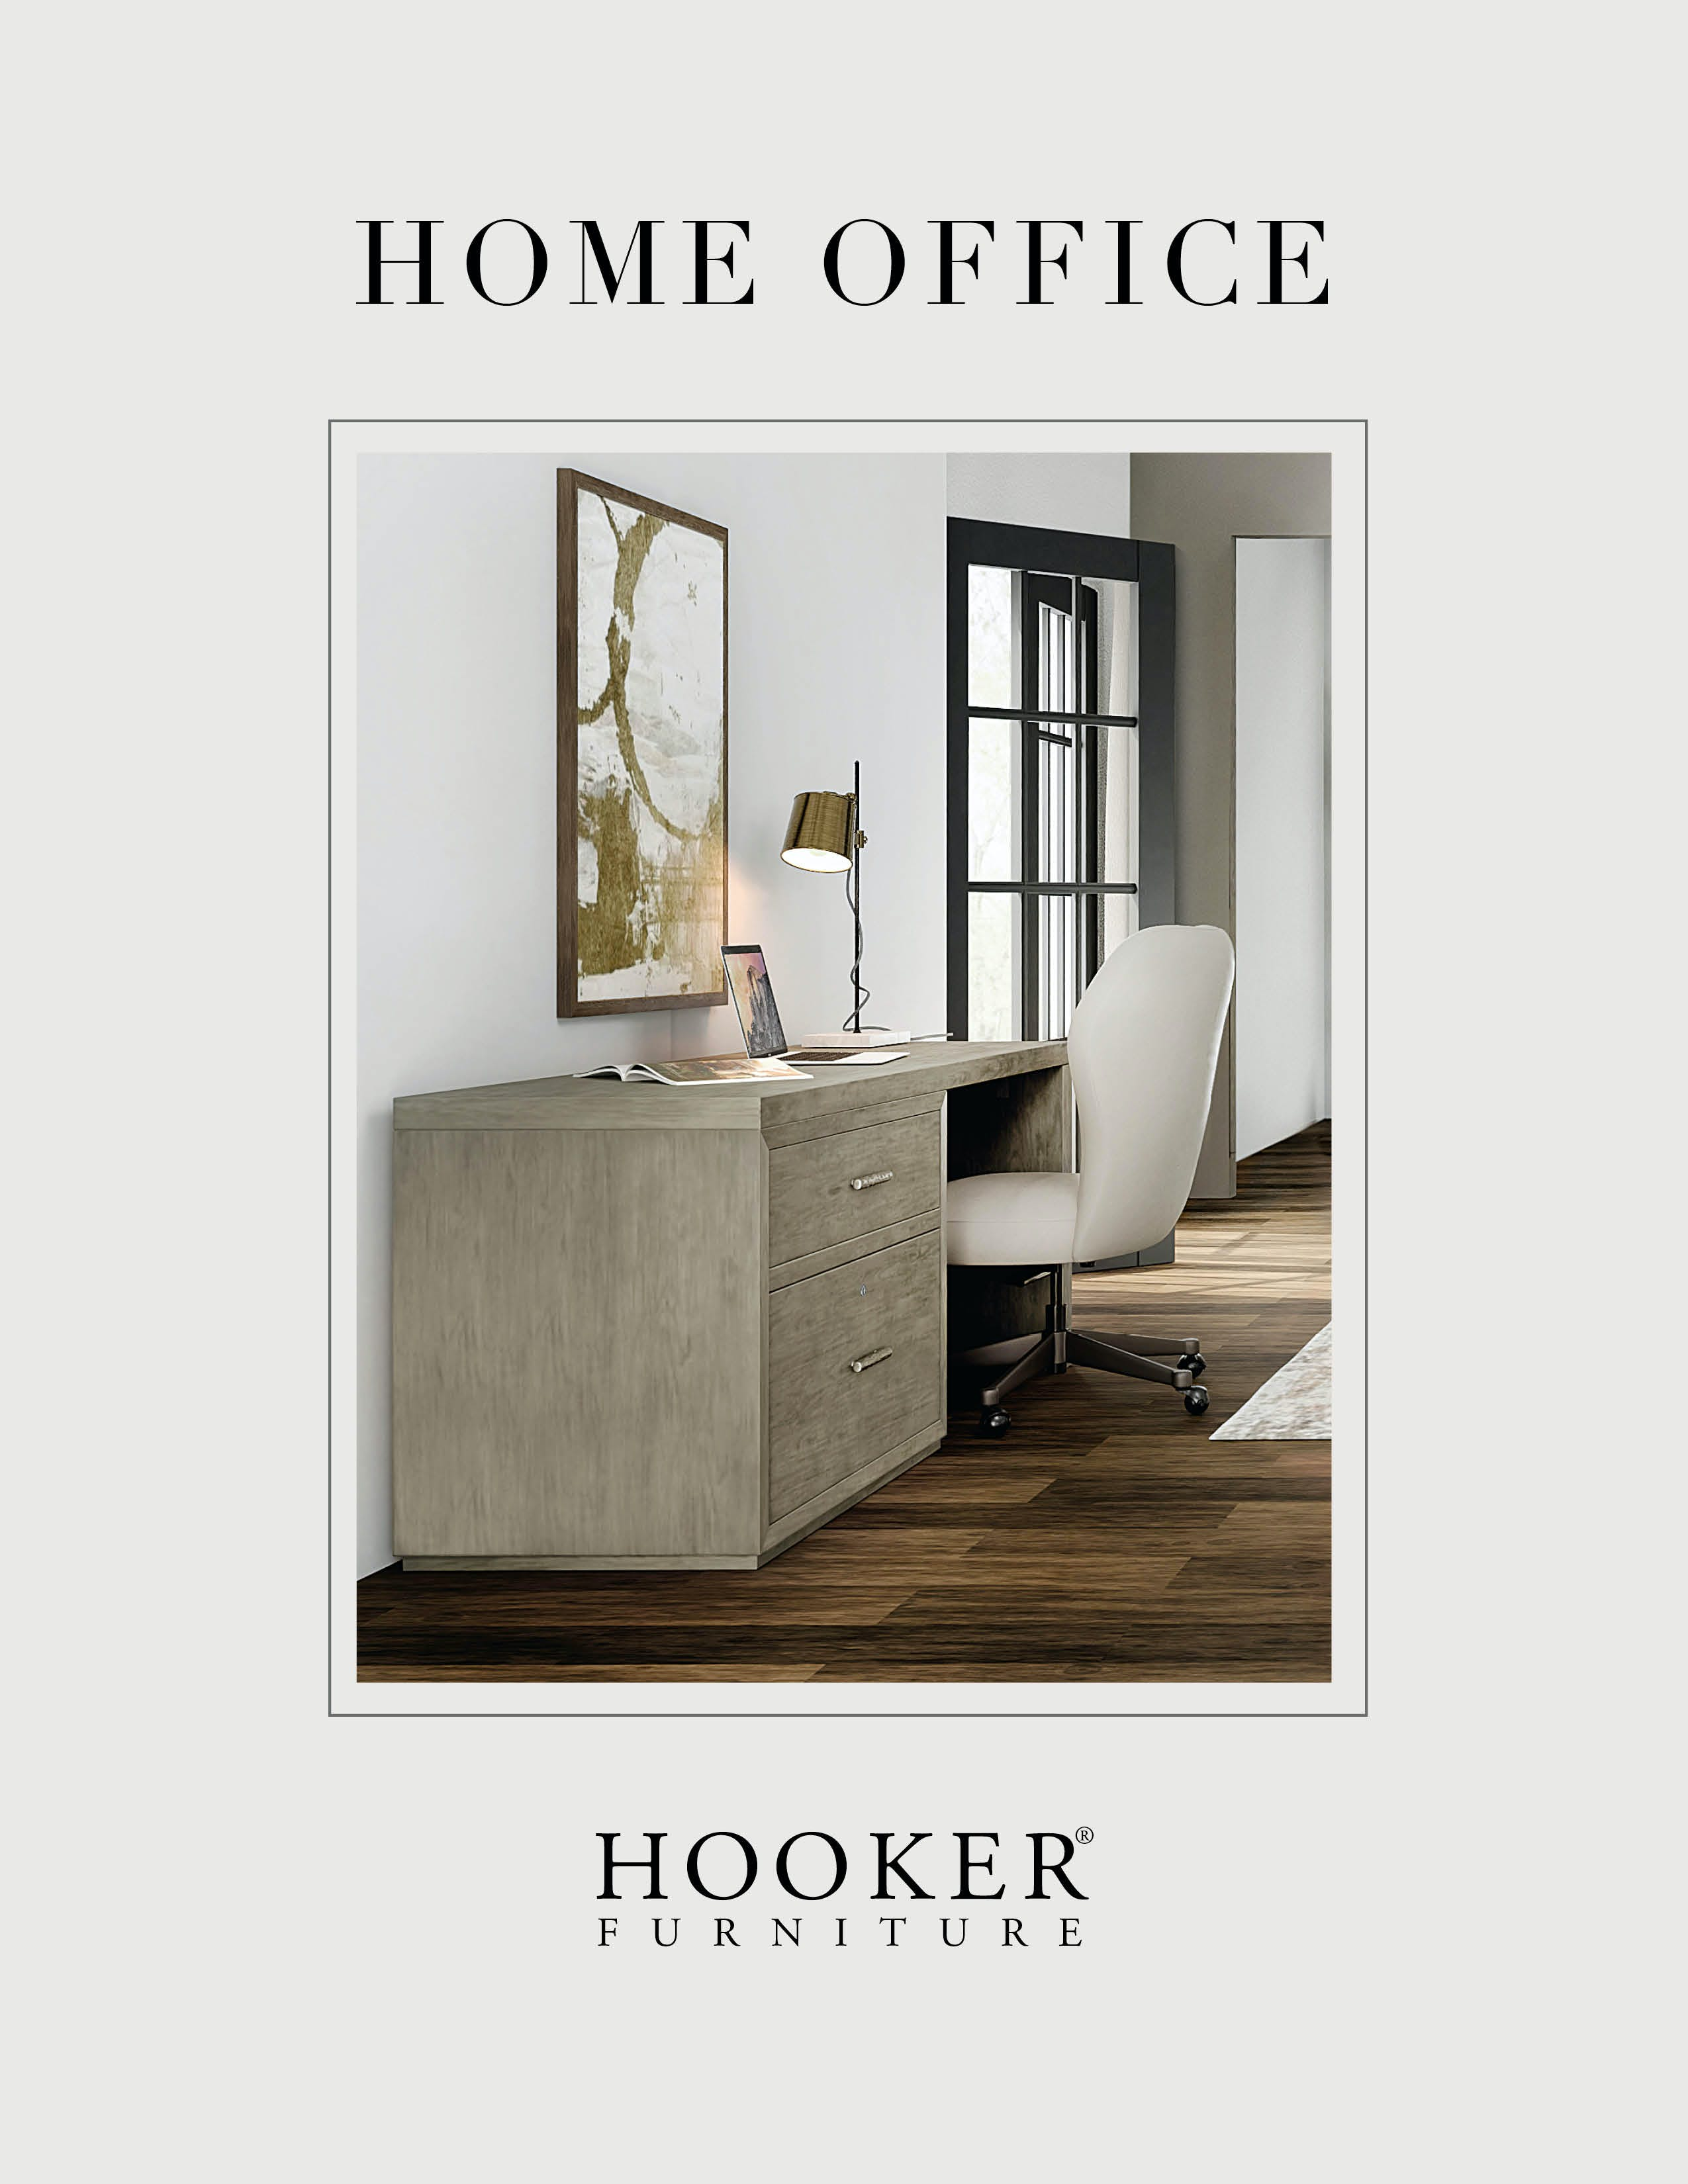 Product Furniture Collection Catalogs Hooker Furniture